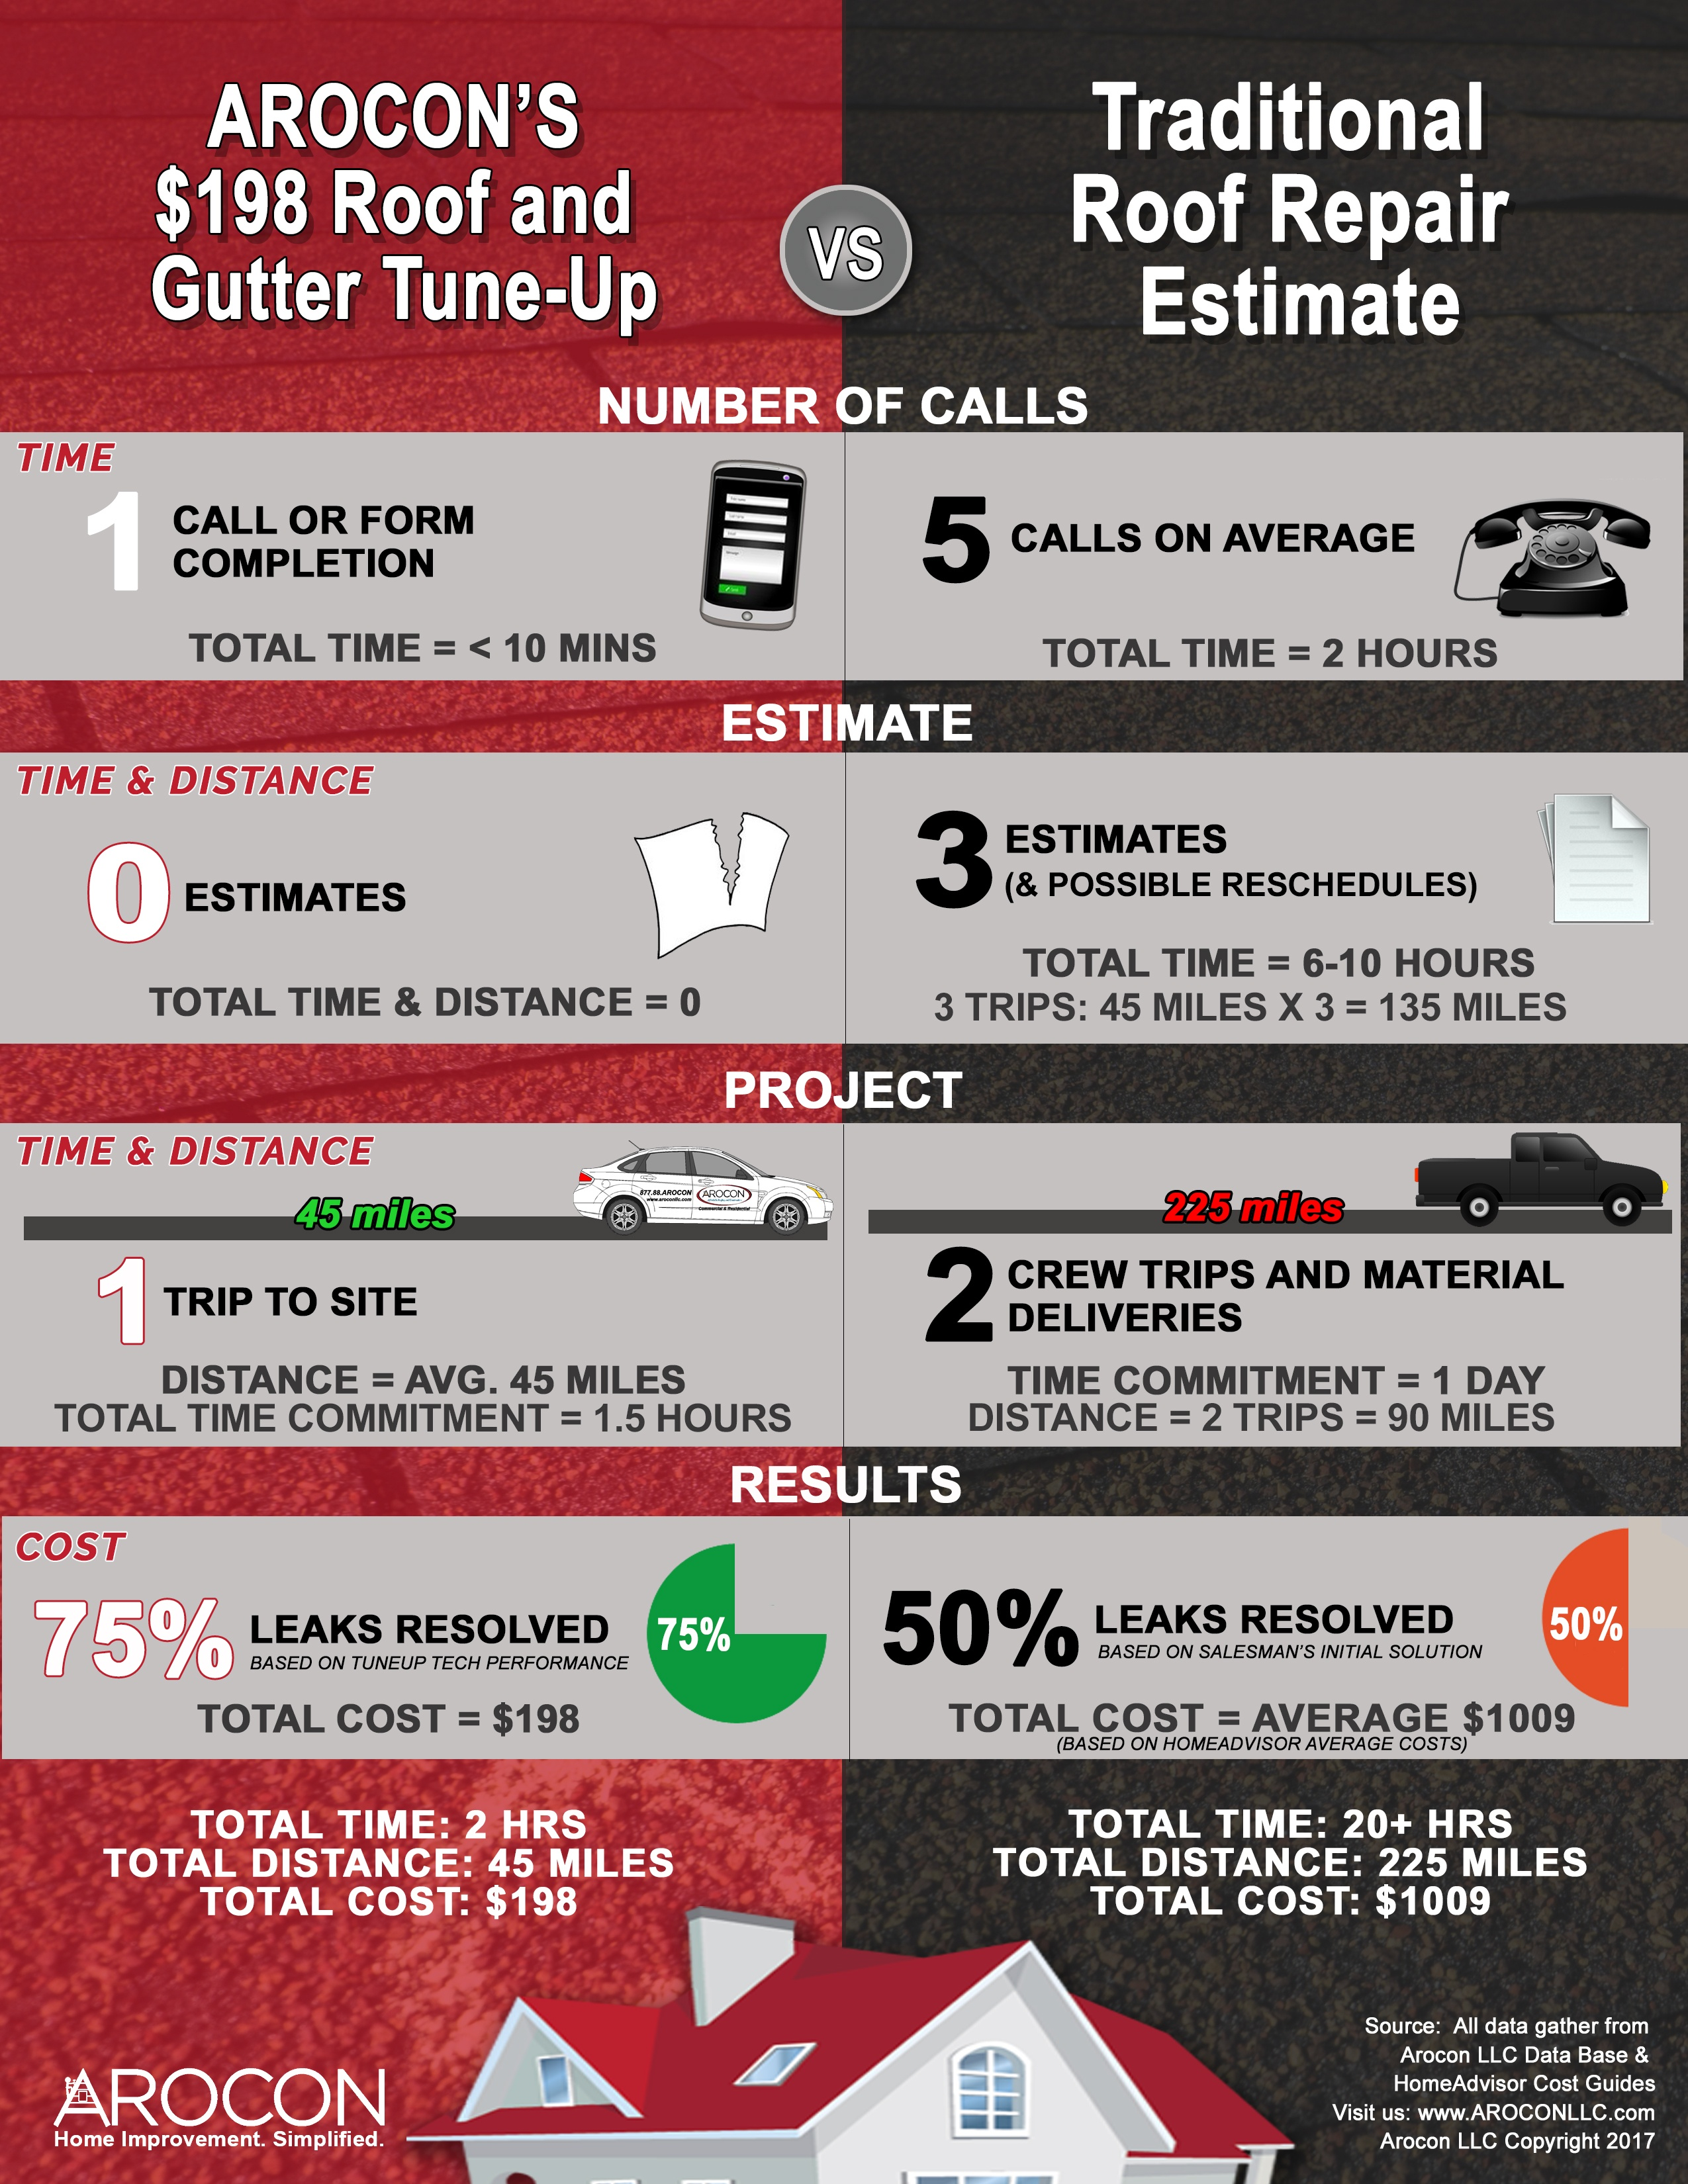 Roof Repair vs Roof Tune-Up Costs